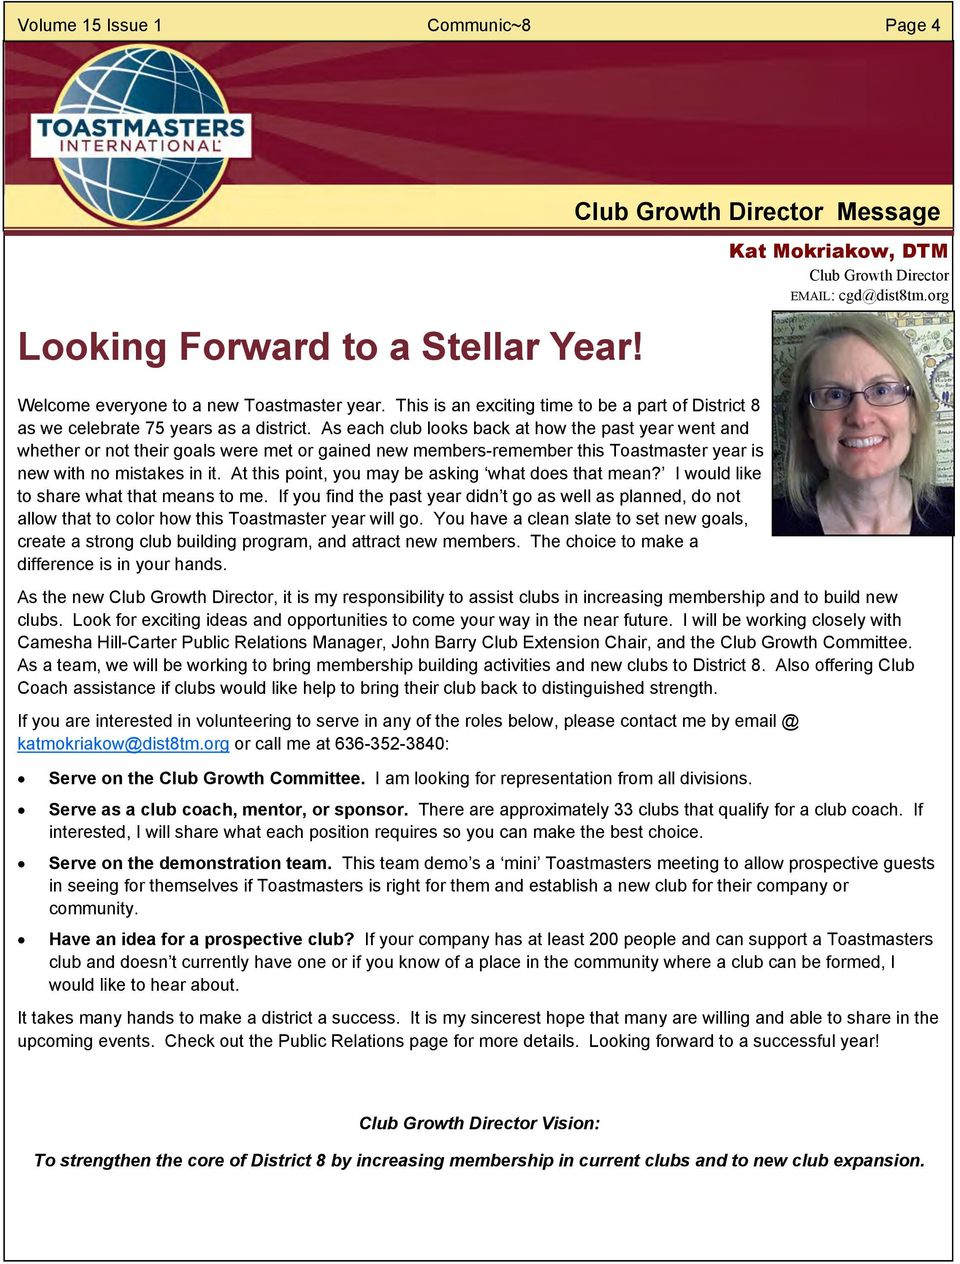 As each club looks back at how the past year went and whether or not their goals were met or gained new members-remember this Toastmaster year is new with no mistakes in it.